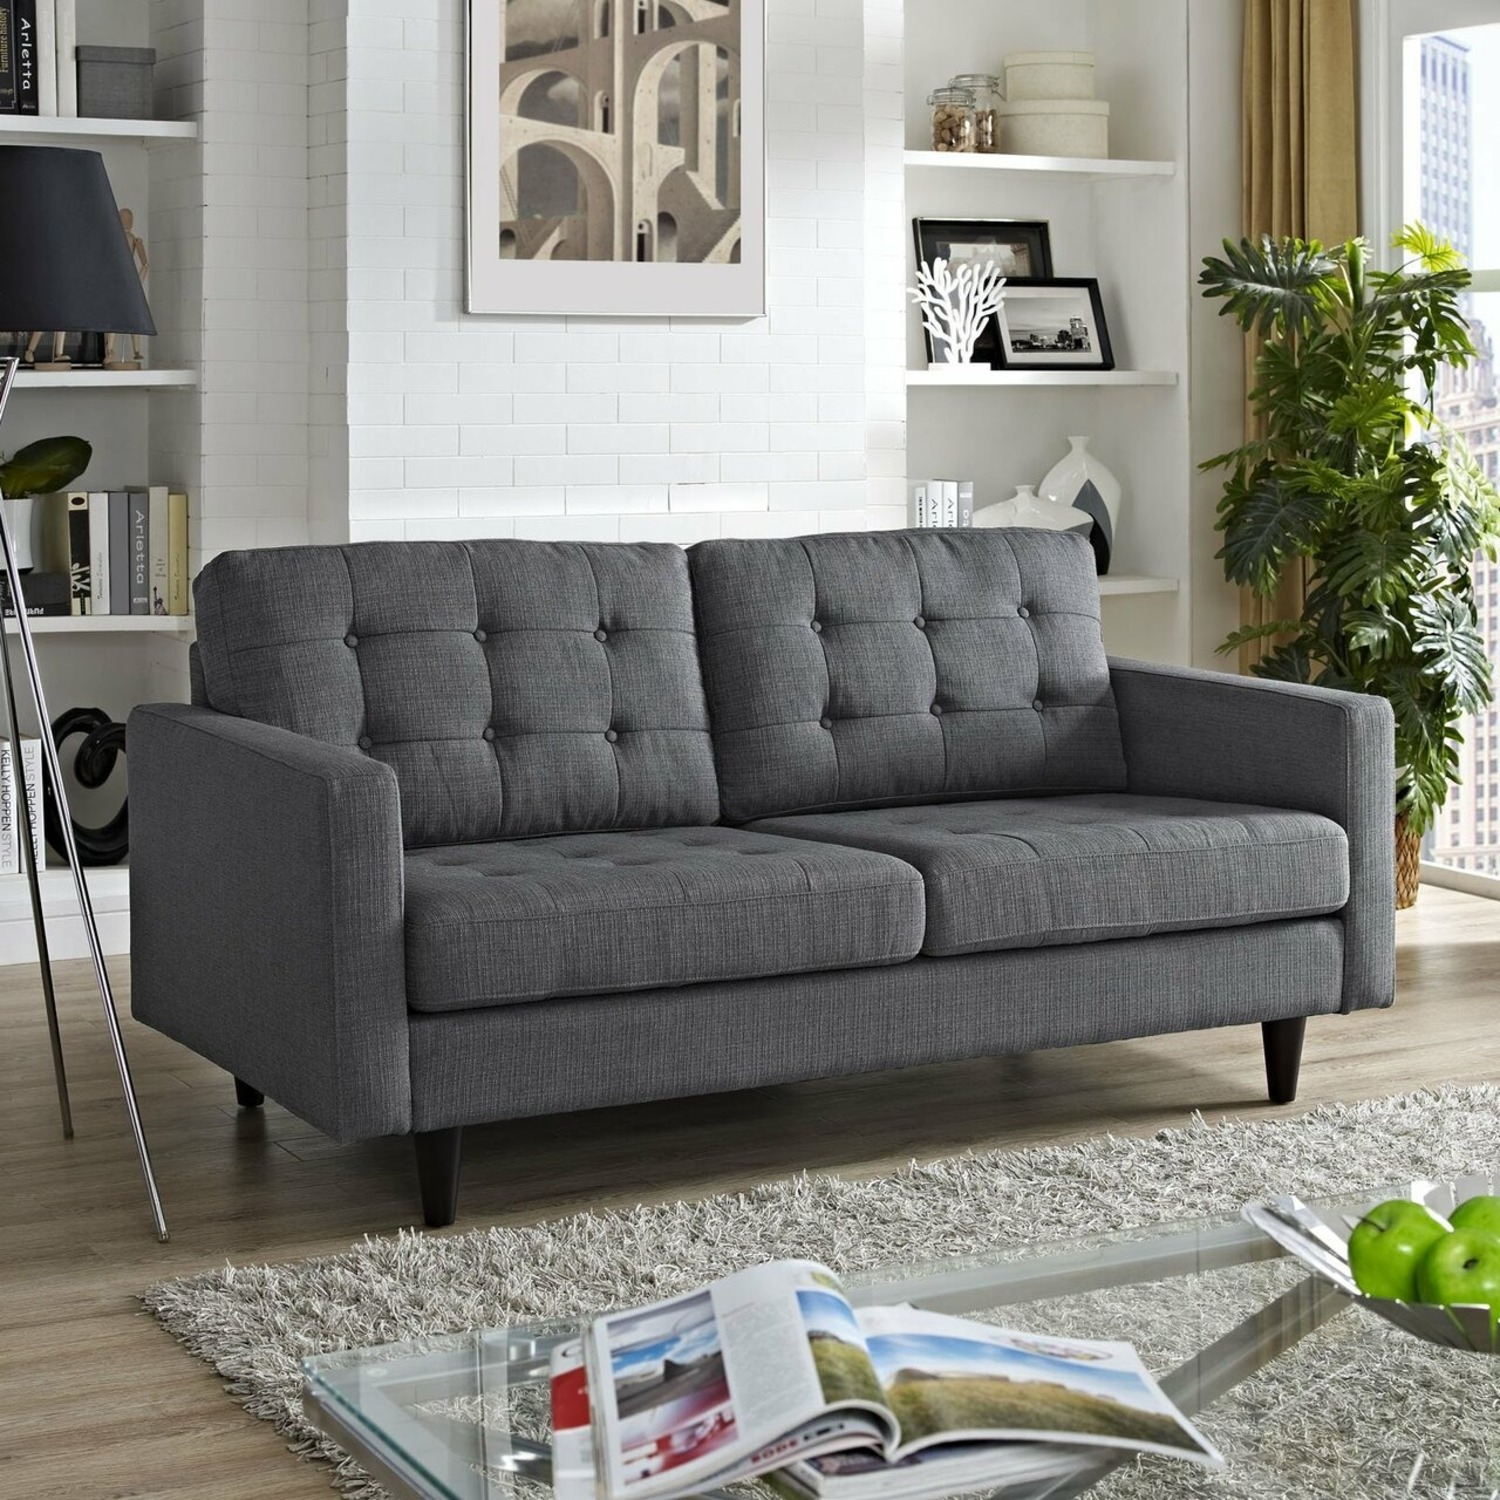 Loveseat In Gray Fabric Upholstery W/ Wood Legs - image-3